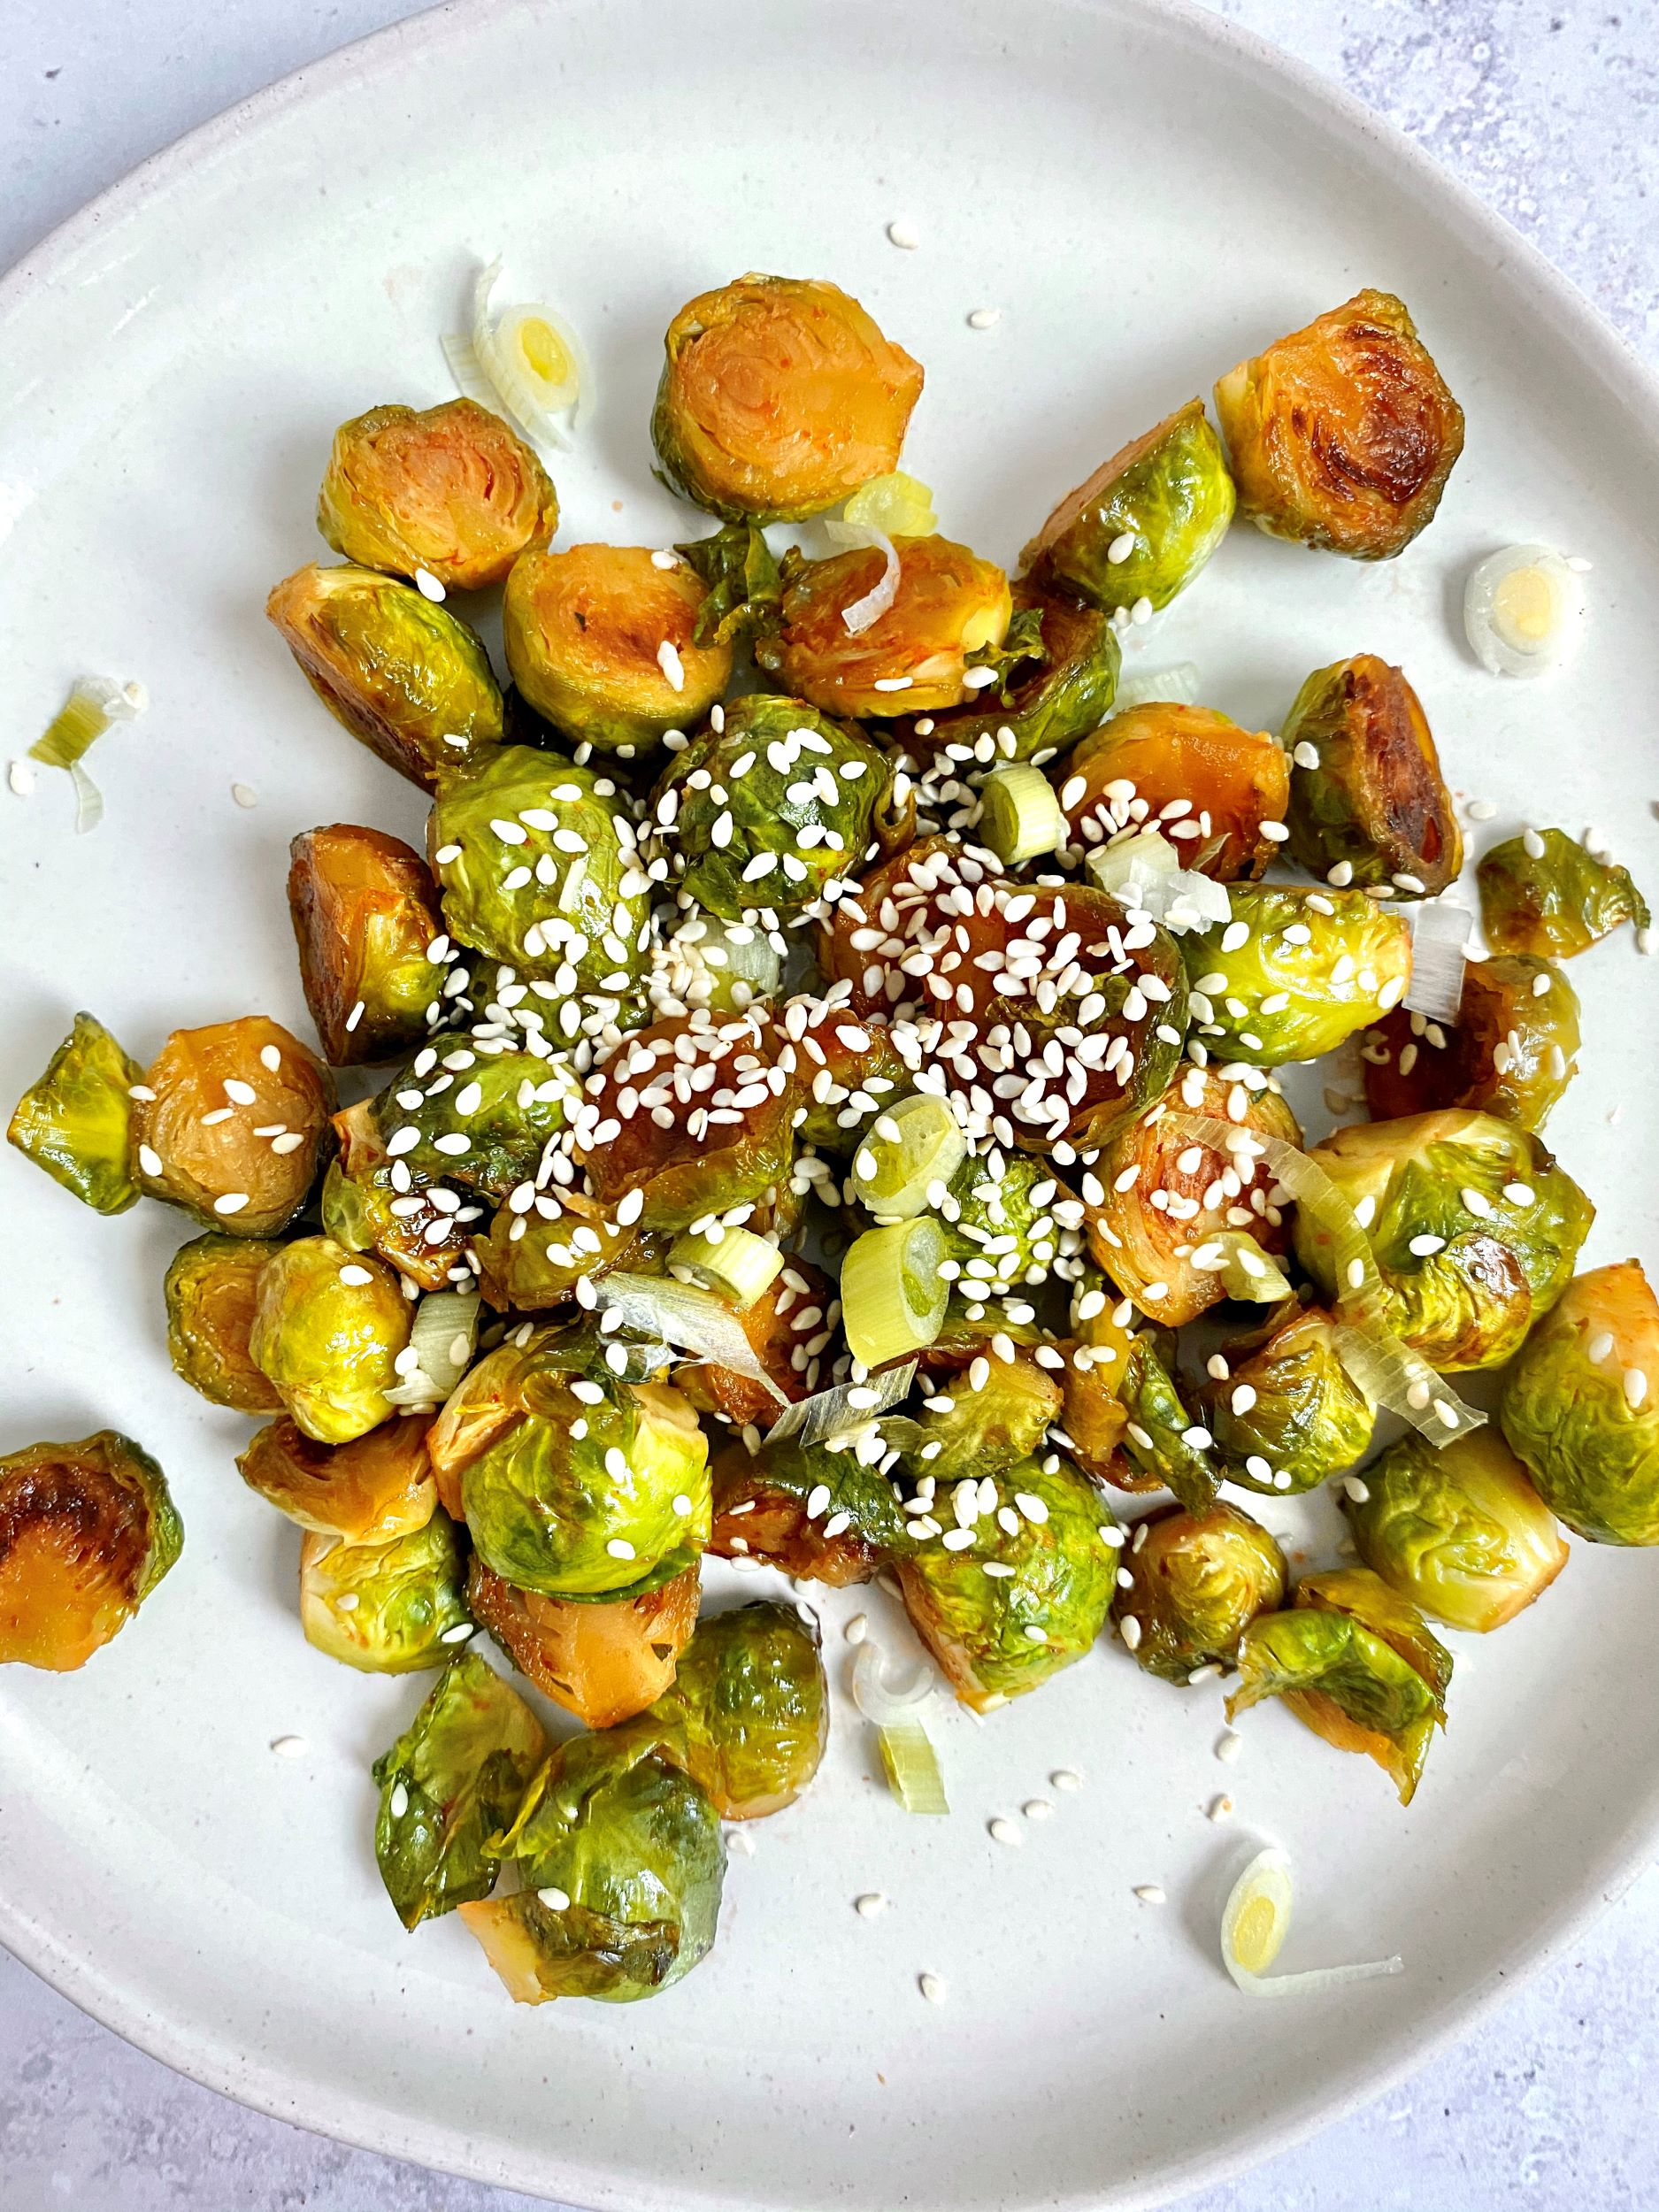 Oil-Free Skillet-Fried Brussels Sprouts